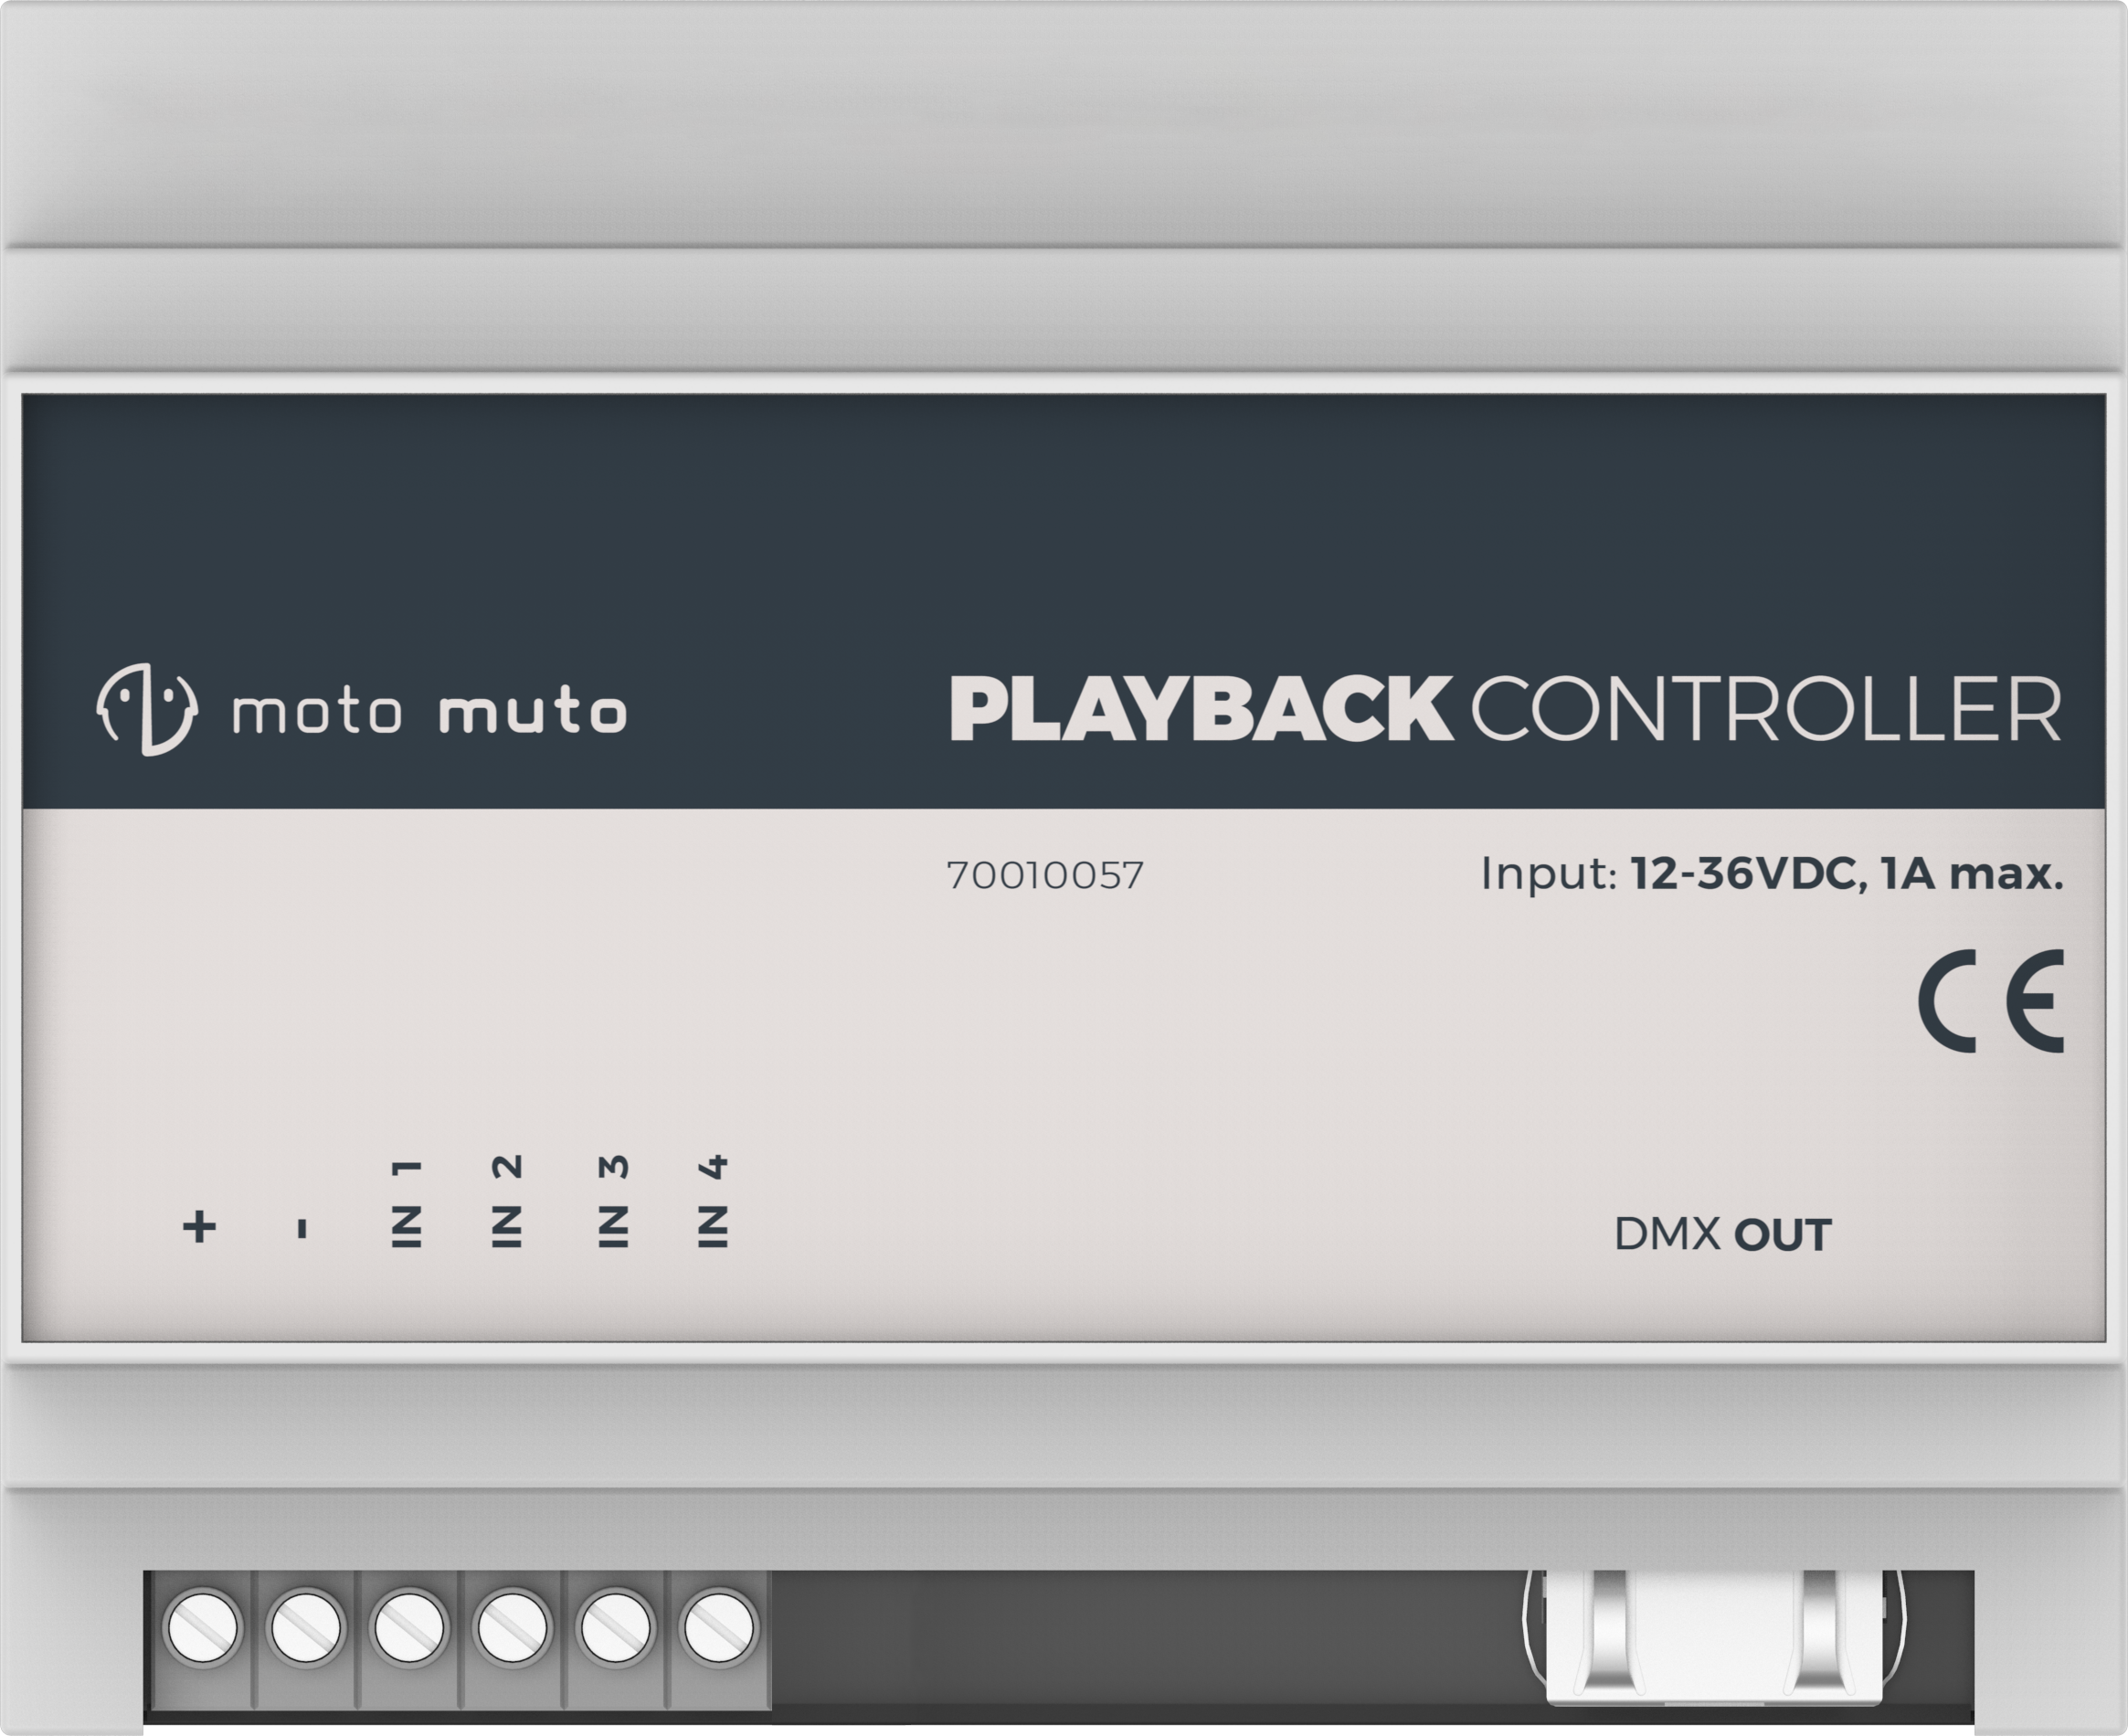 Playback Controller